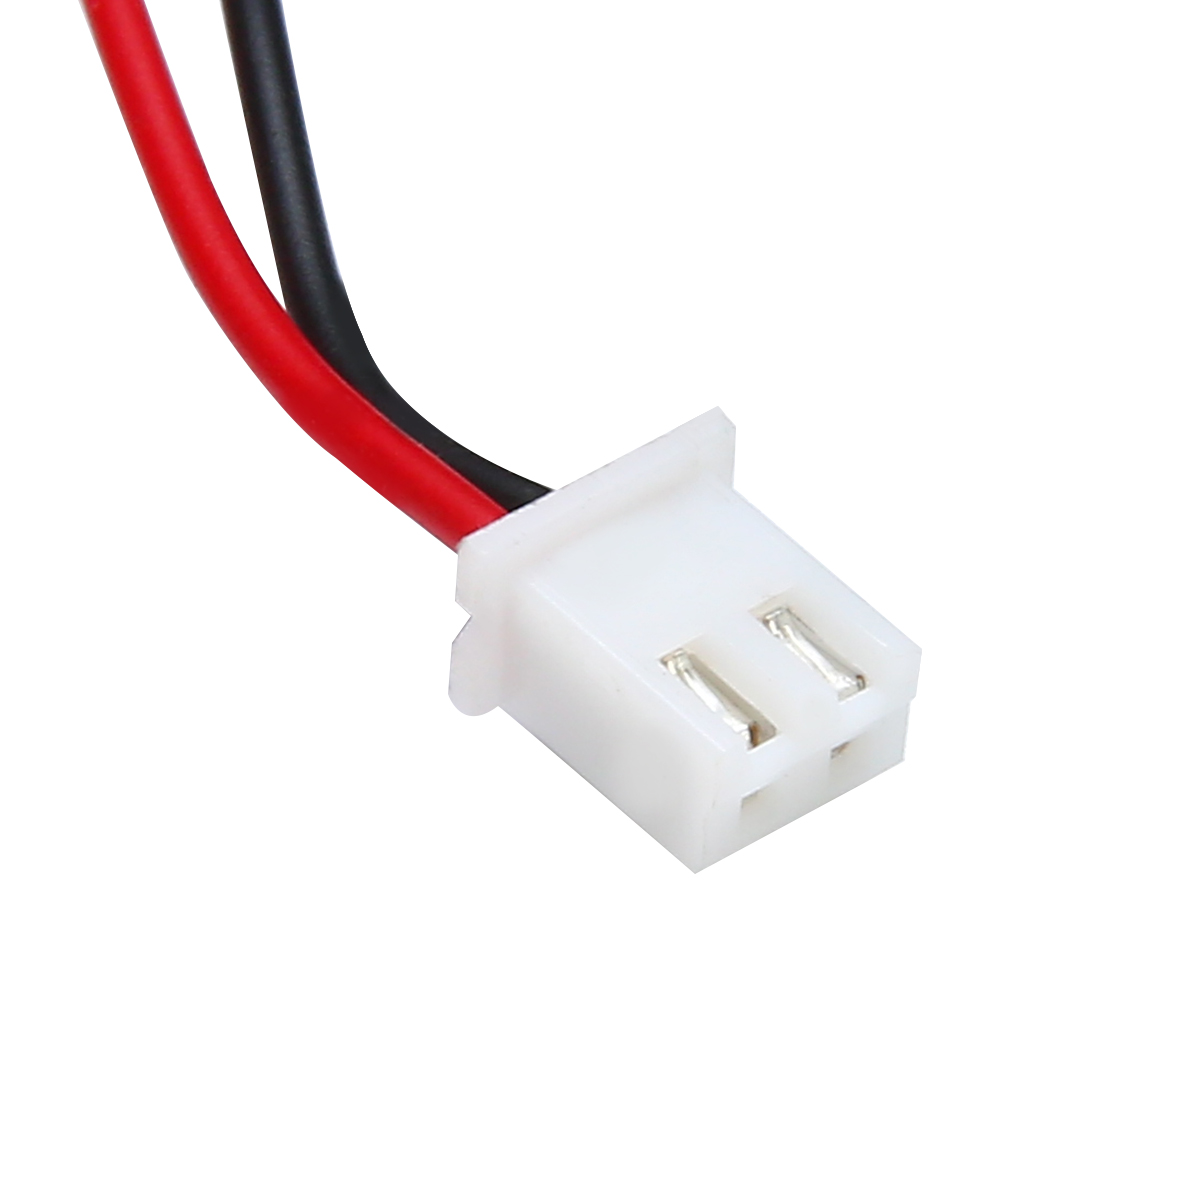 12v Dc 11a Electric Lock Assembly Solenoid Push Pull Plug Wiring Cylindrical For Cabinet Door Drawer Access Control In Locks From Home Improvement On